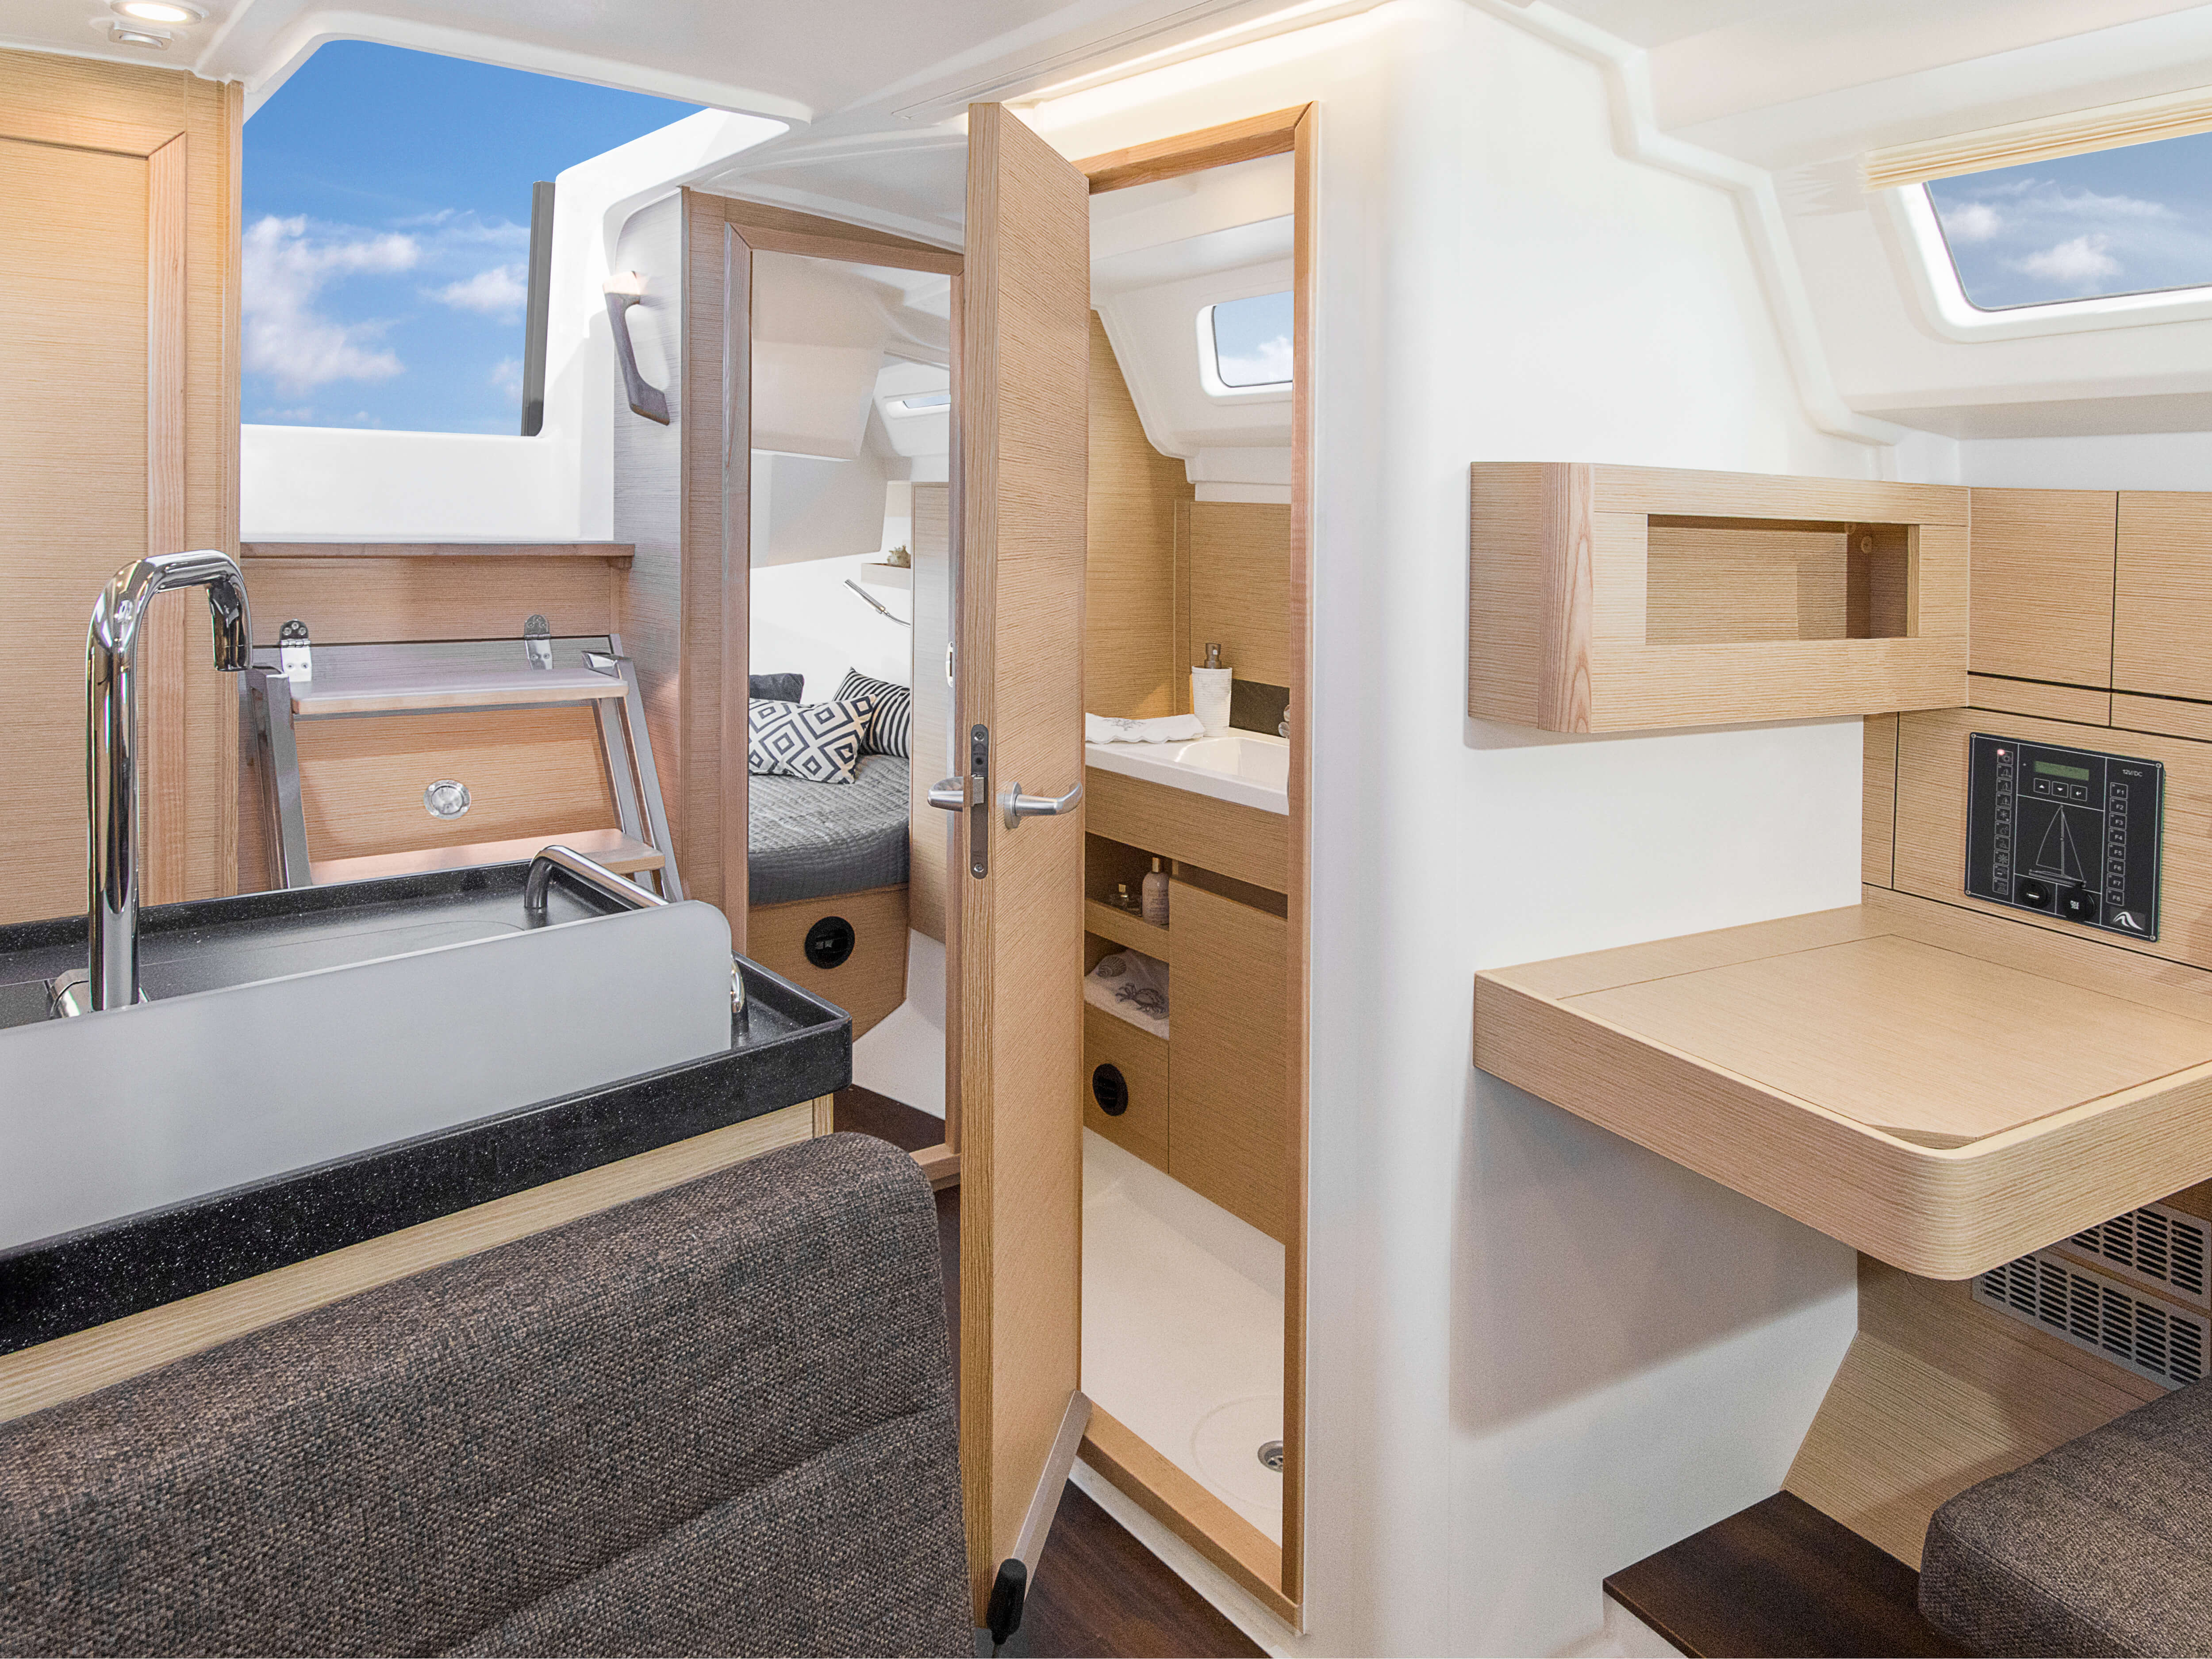 Hanse 348 | Interior view - C2: 2 aft cabins with double berth and storage - separate head on port | Hanse